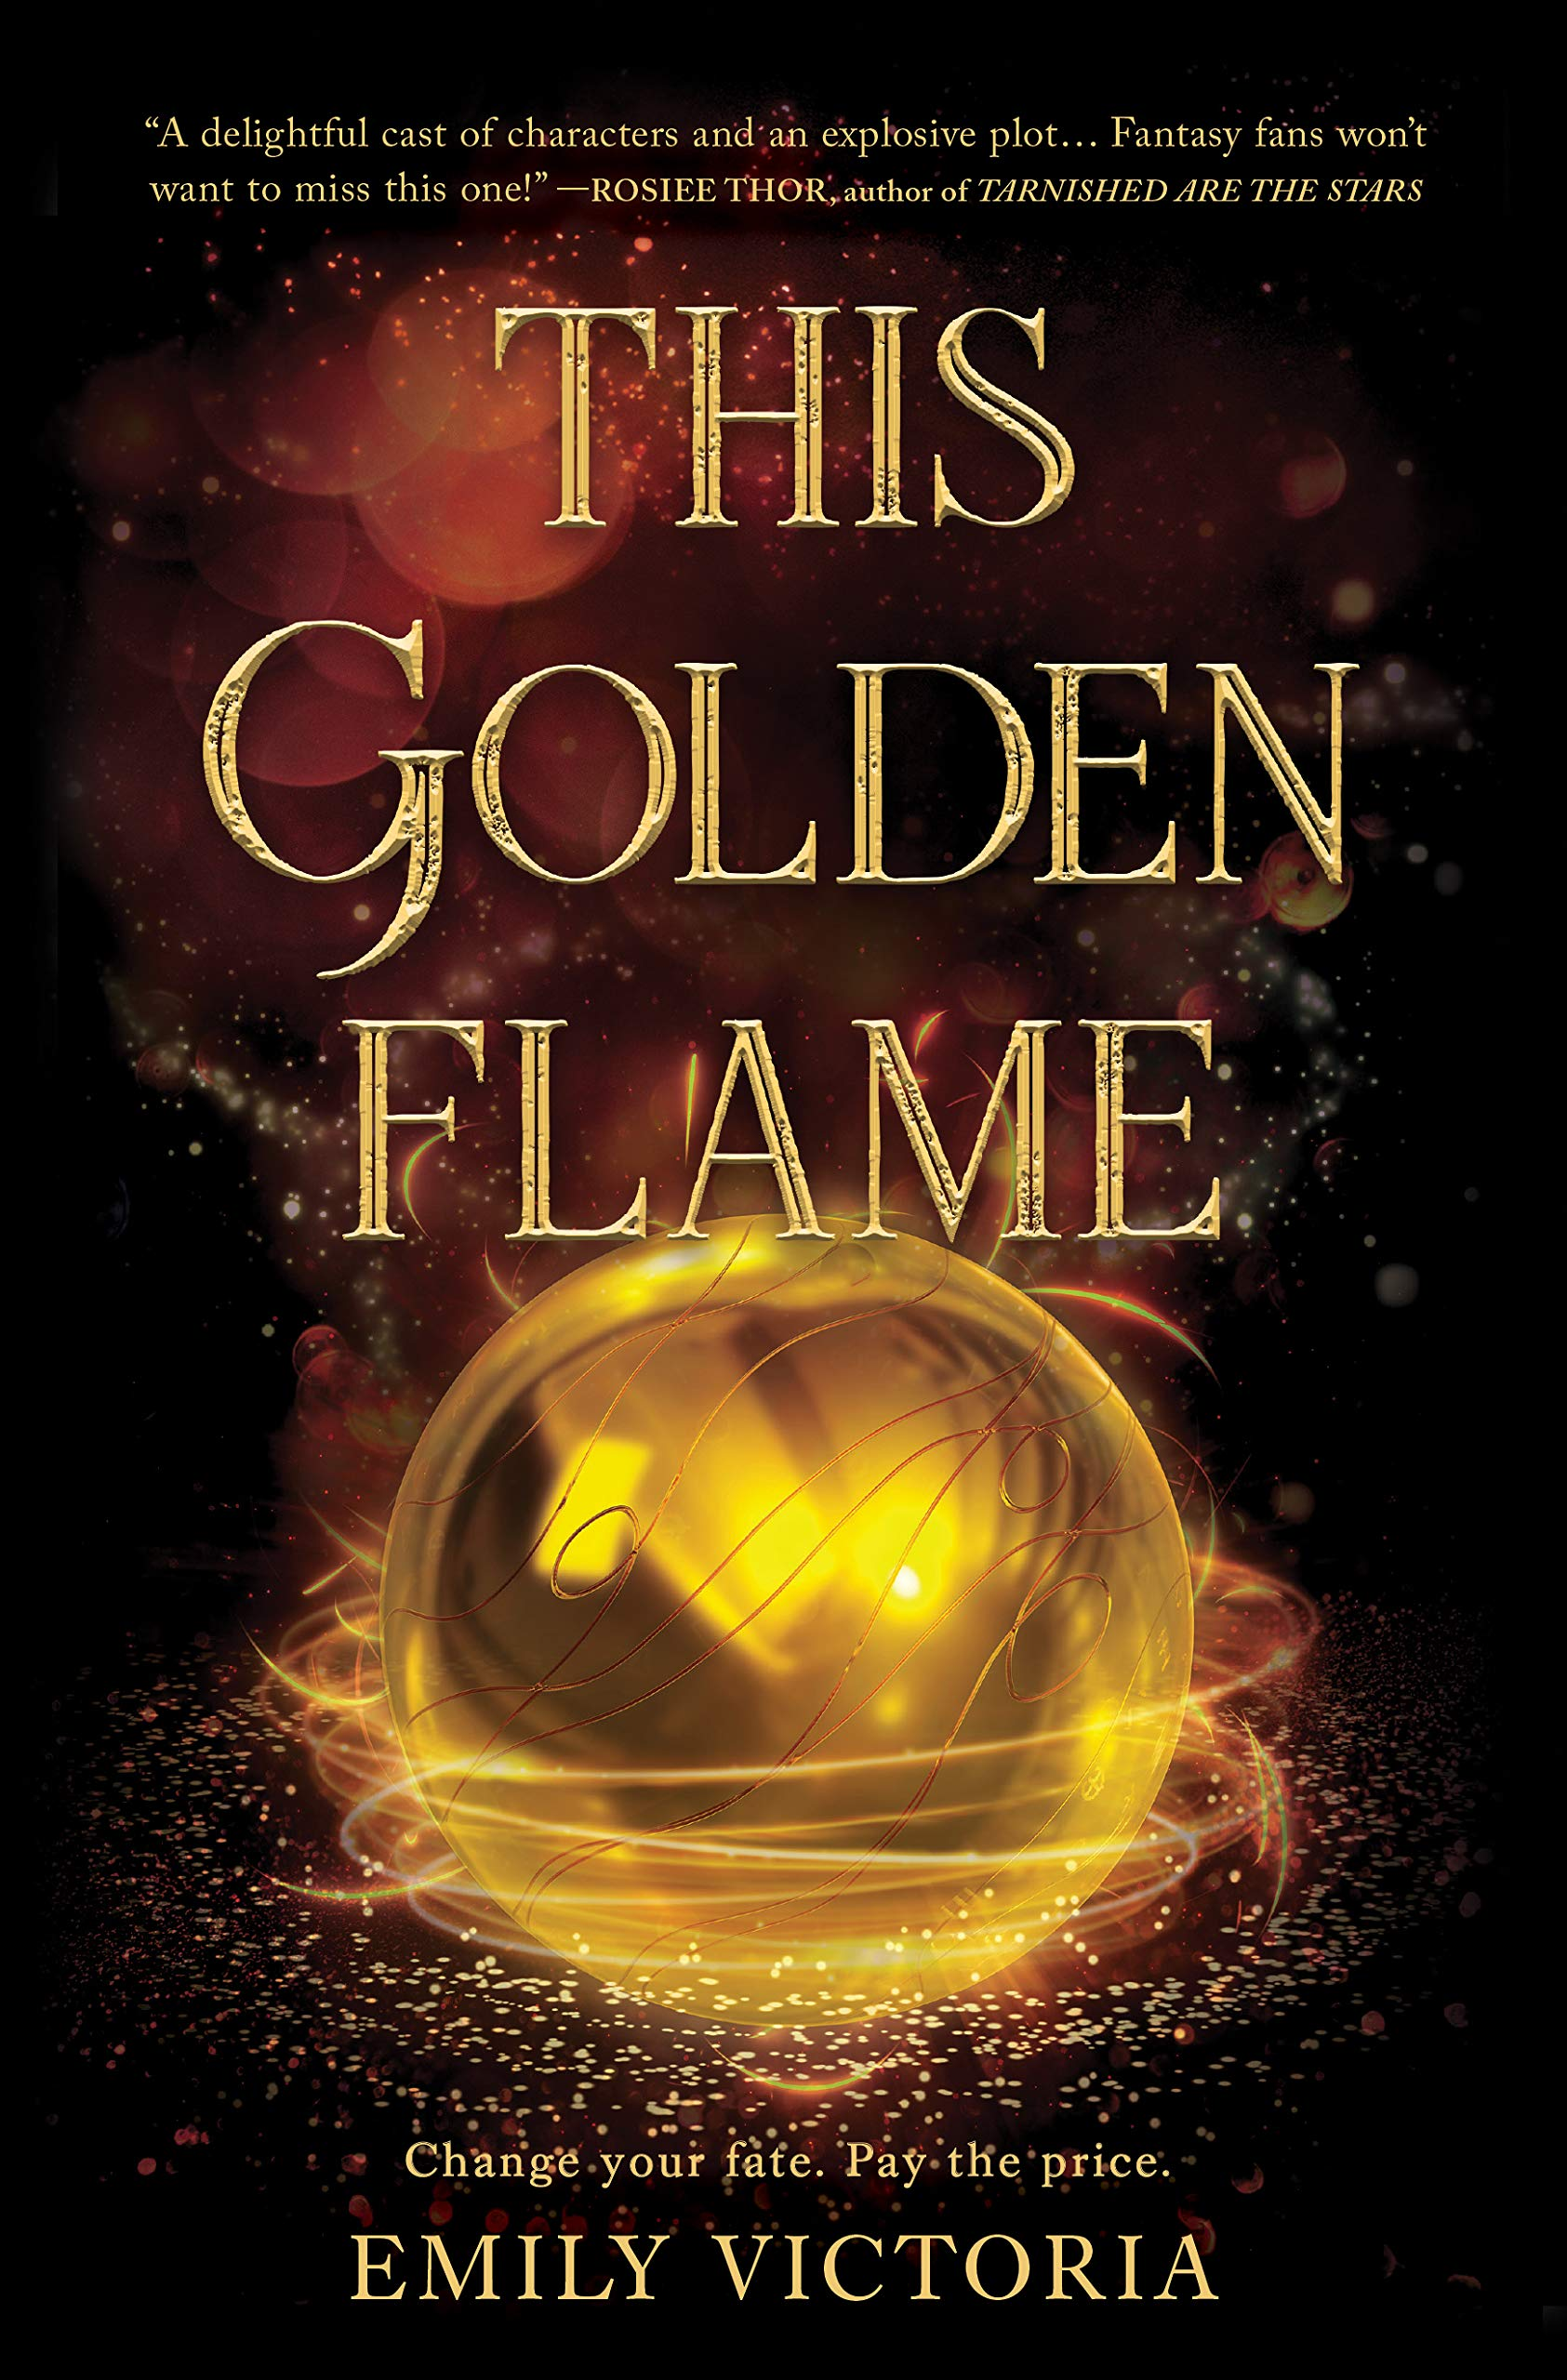 Amazon.com: This Golden Flame (9781335080271): Victoria, Emily: Books